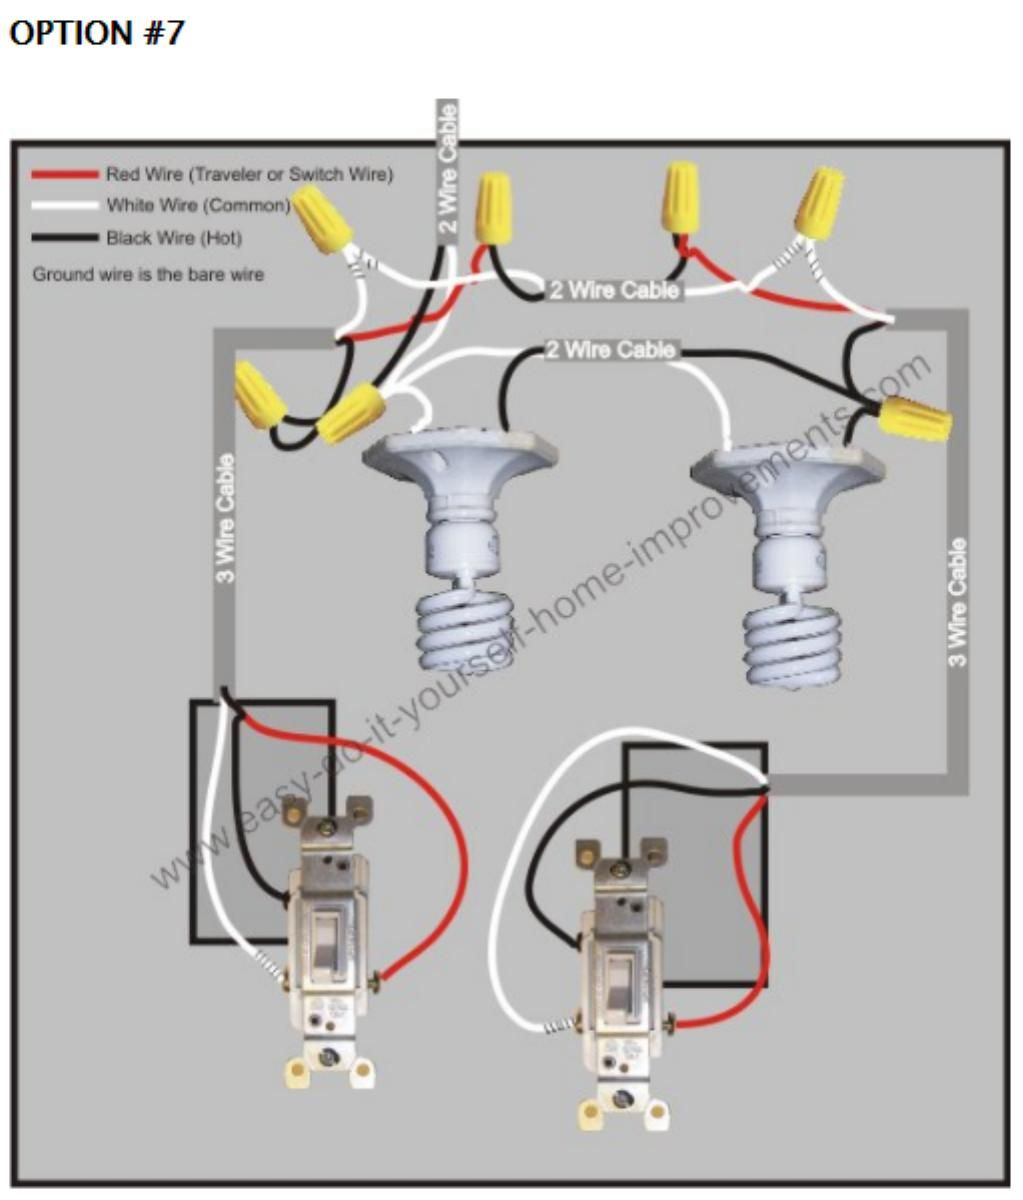 Pin by Shawn Kinney on WIRING 101 | Pinterest